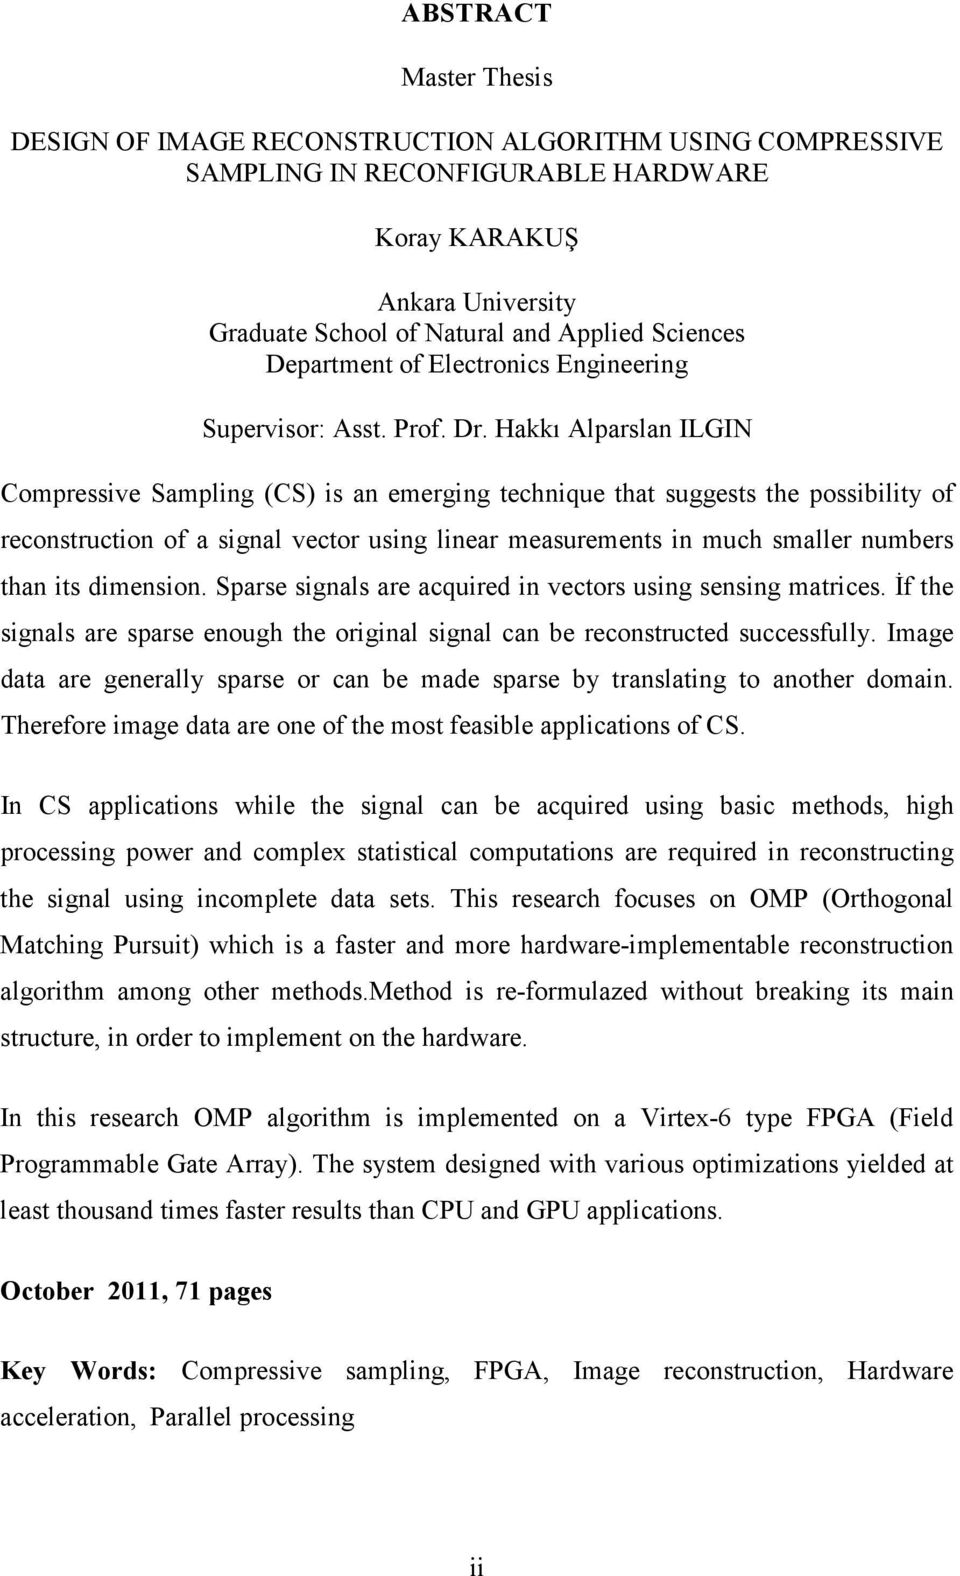 Hakkı Alparslan ILGIN Compressive Sampling (CS) is an emerging technique that suggests the possibility of reconstruction of a signal vector using linear measurements in much smaller numbers than its